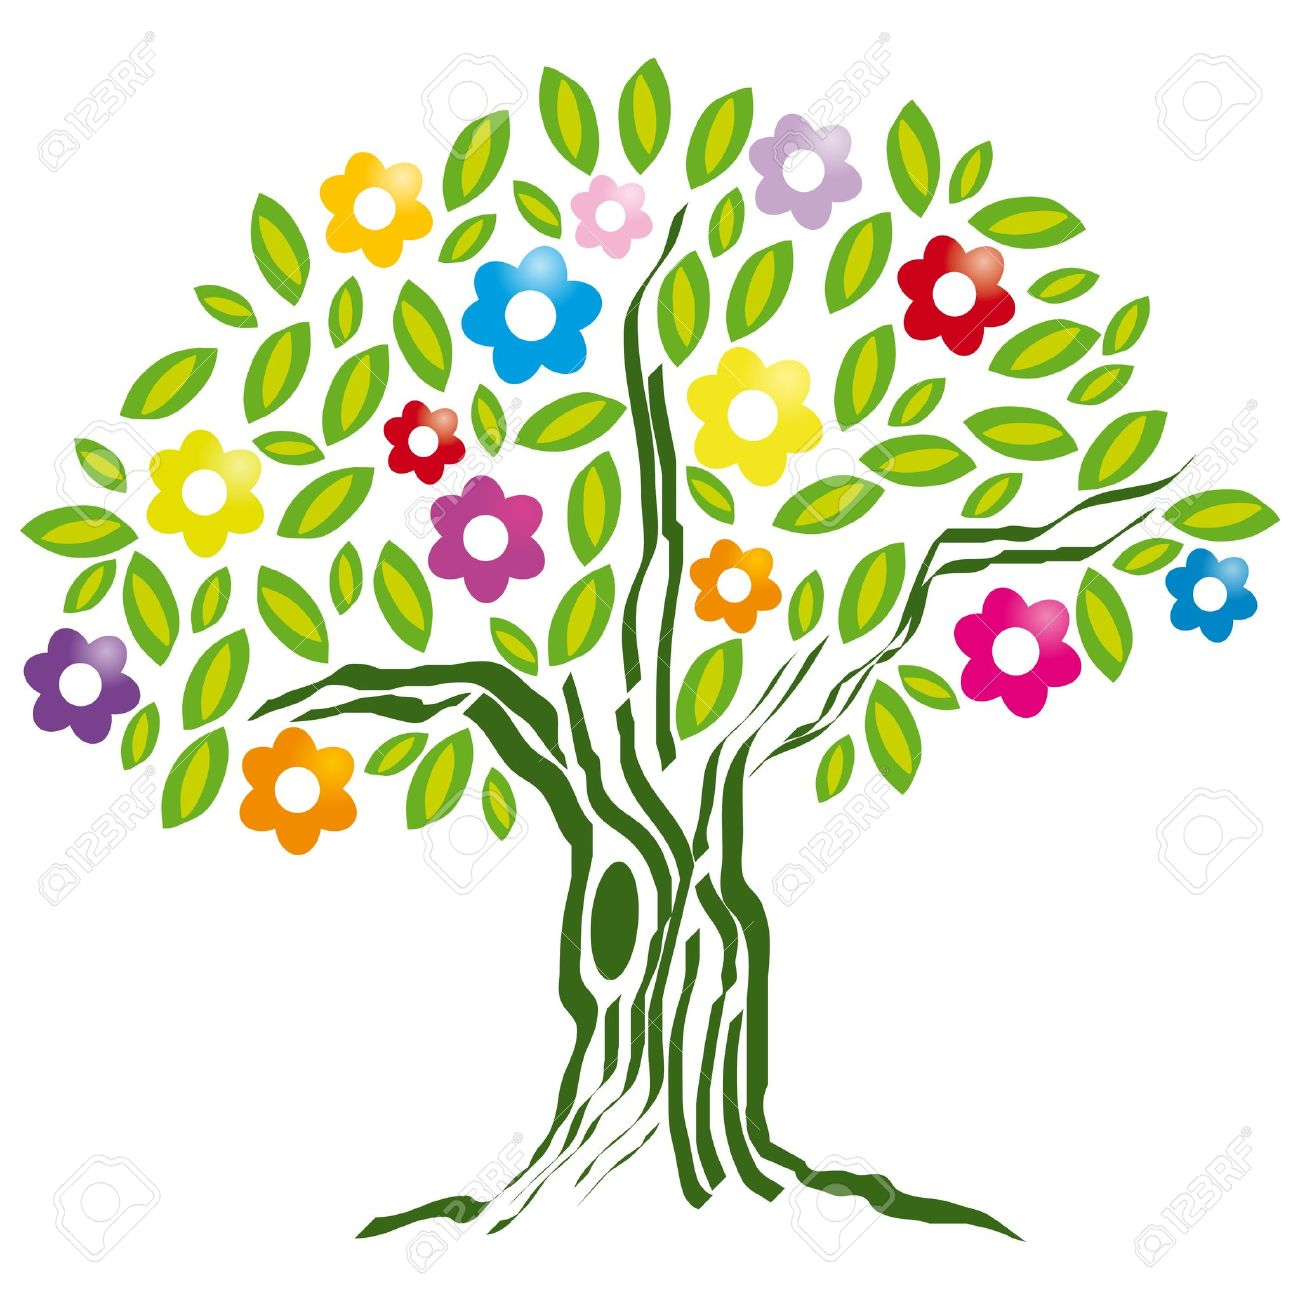 Clipart flower tree.